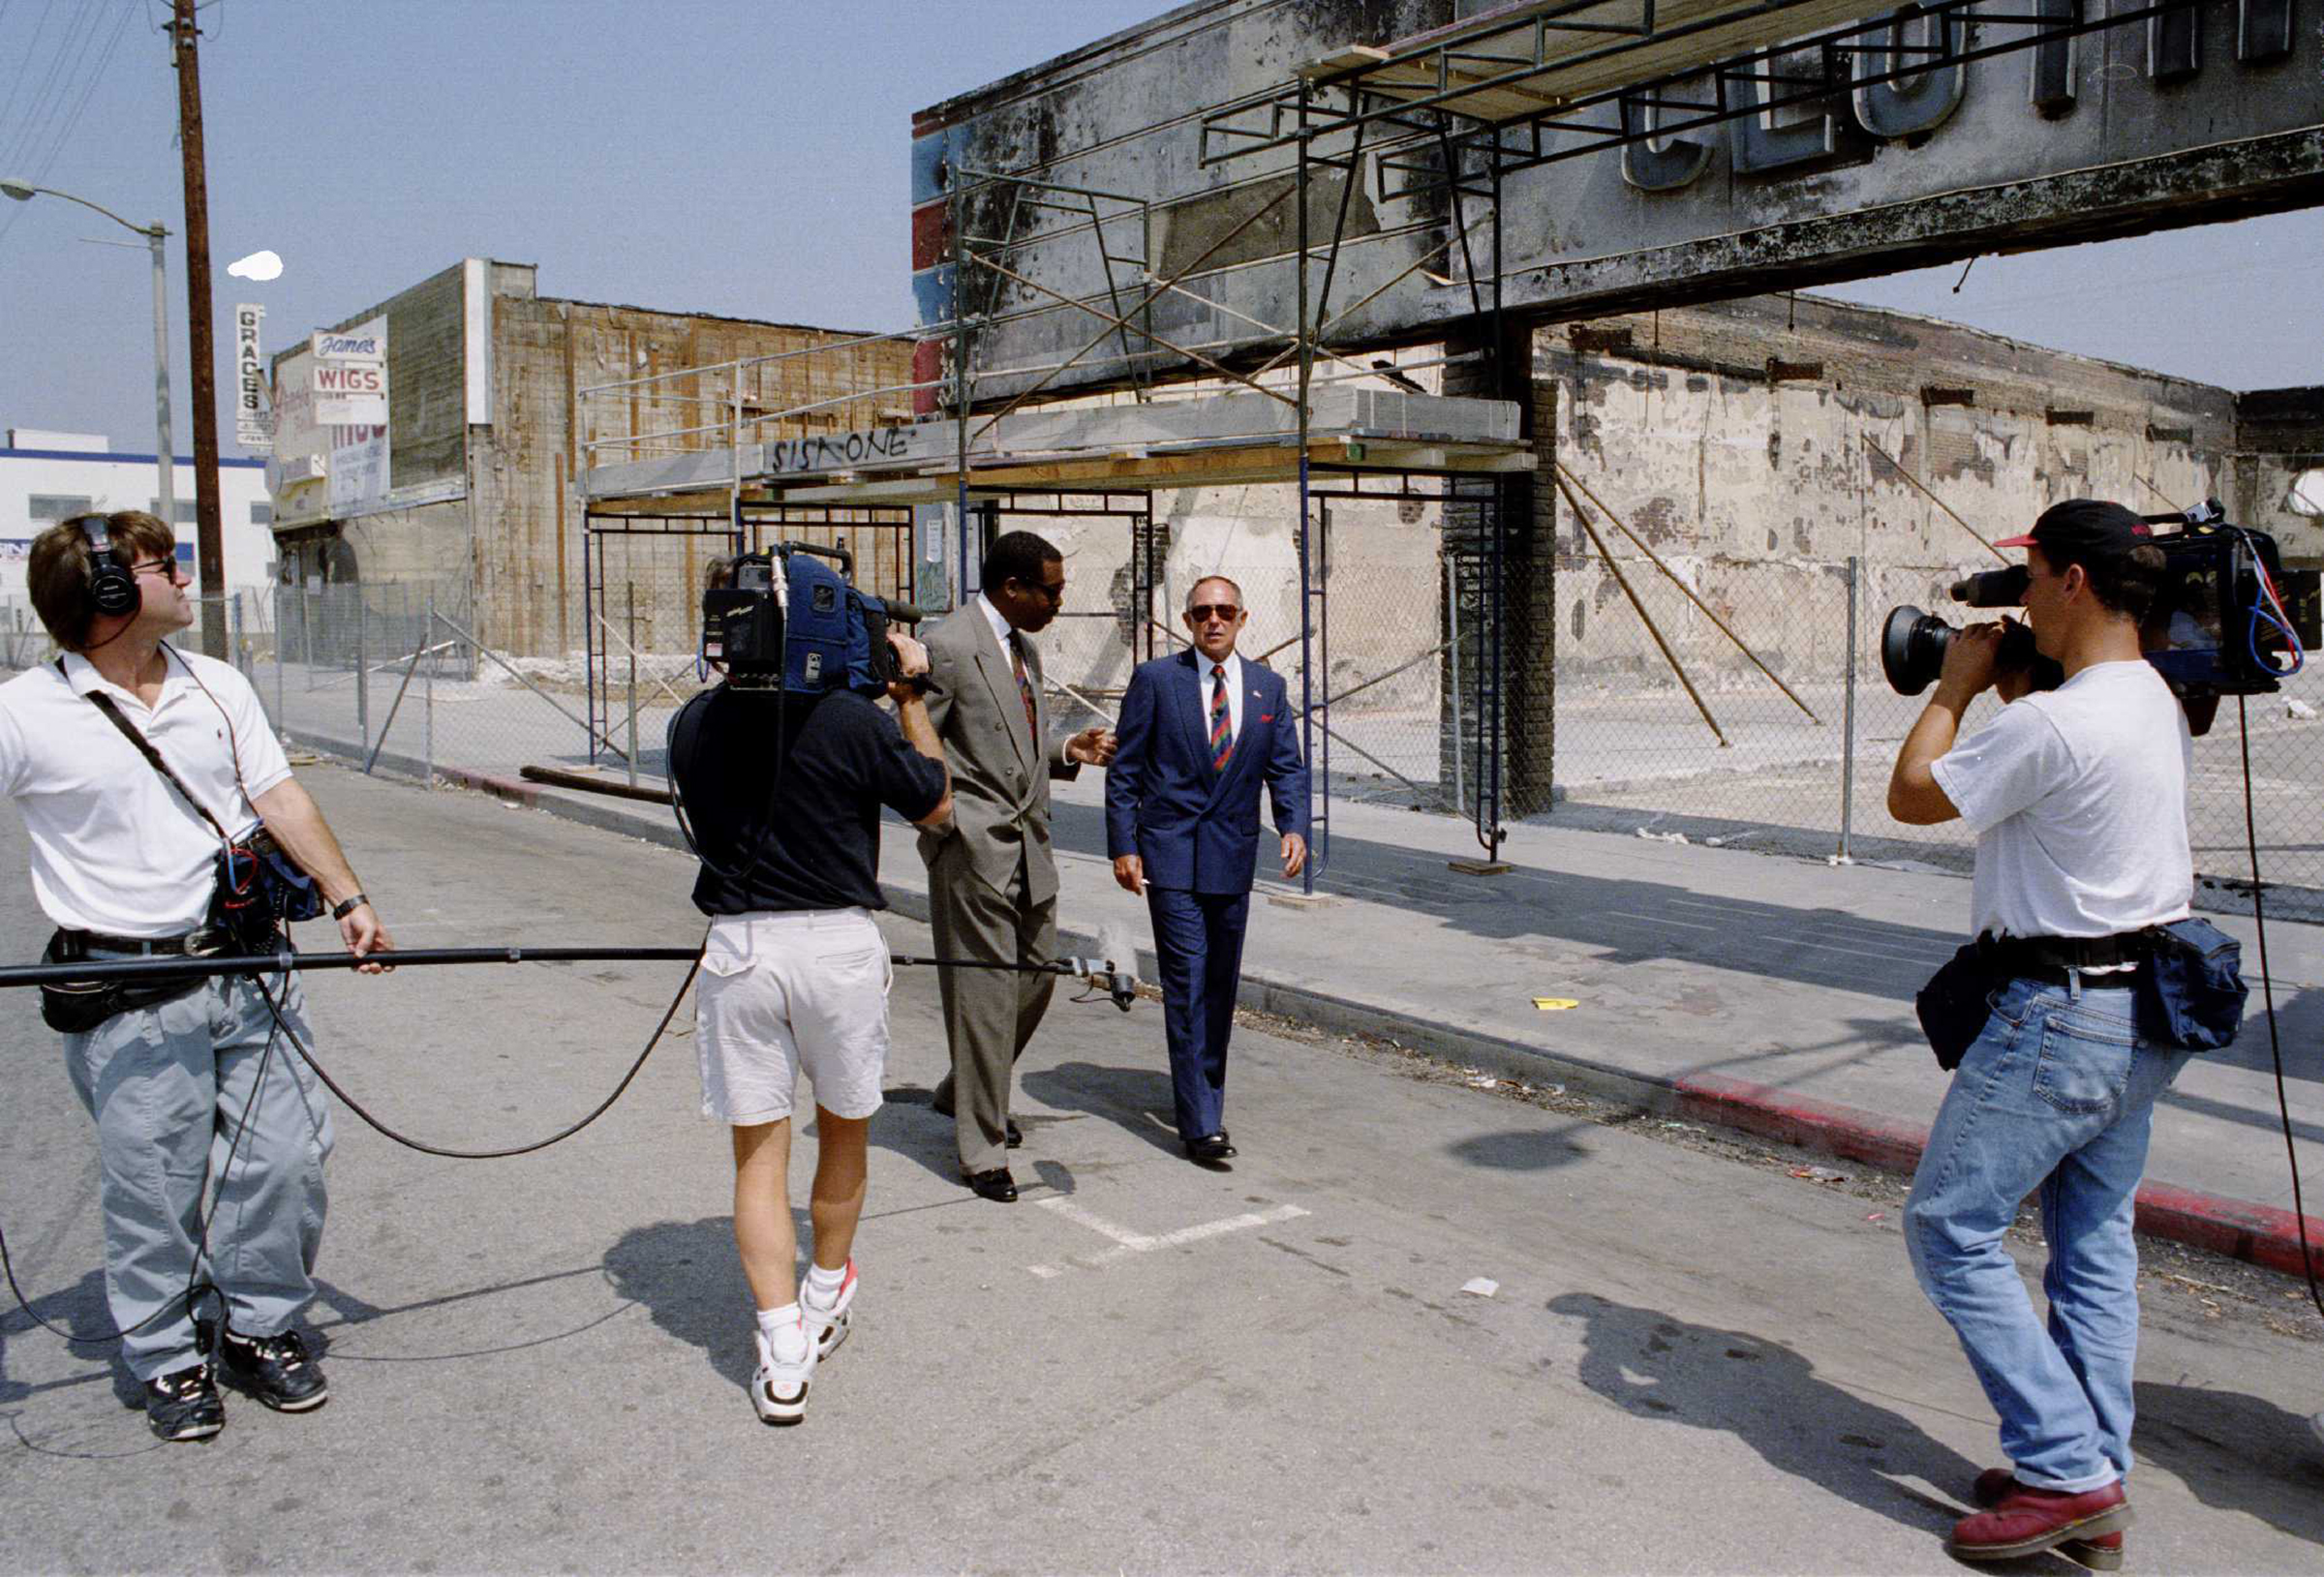 Daryl Gates, the former police chief, during an interview with a television station close to the scene where the riots began.